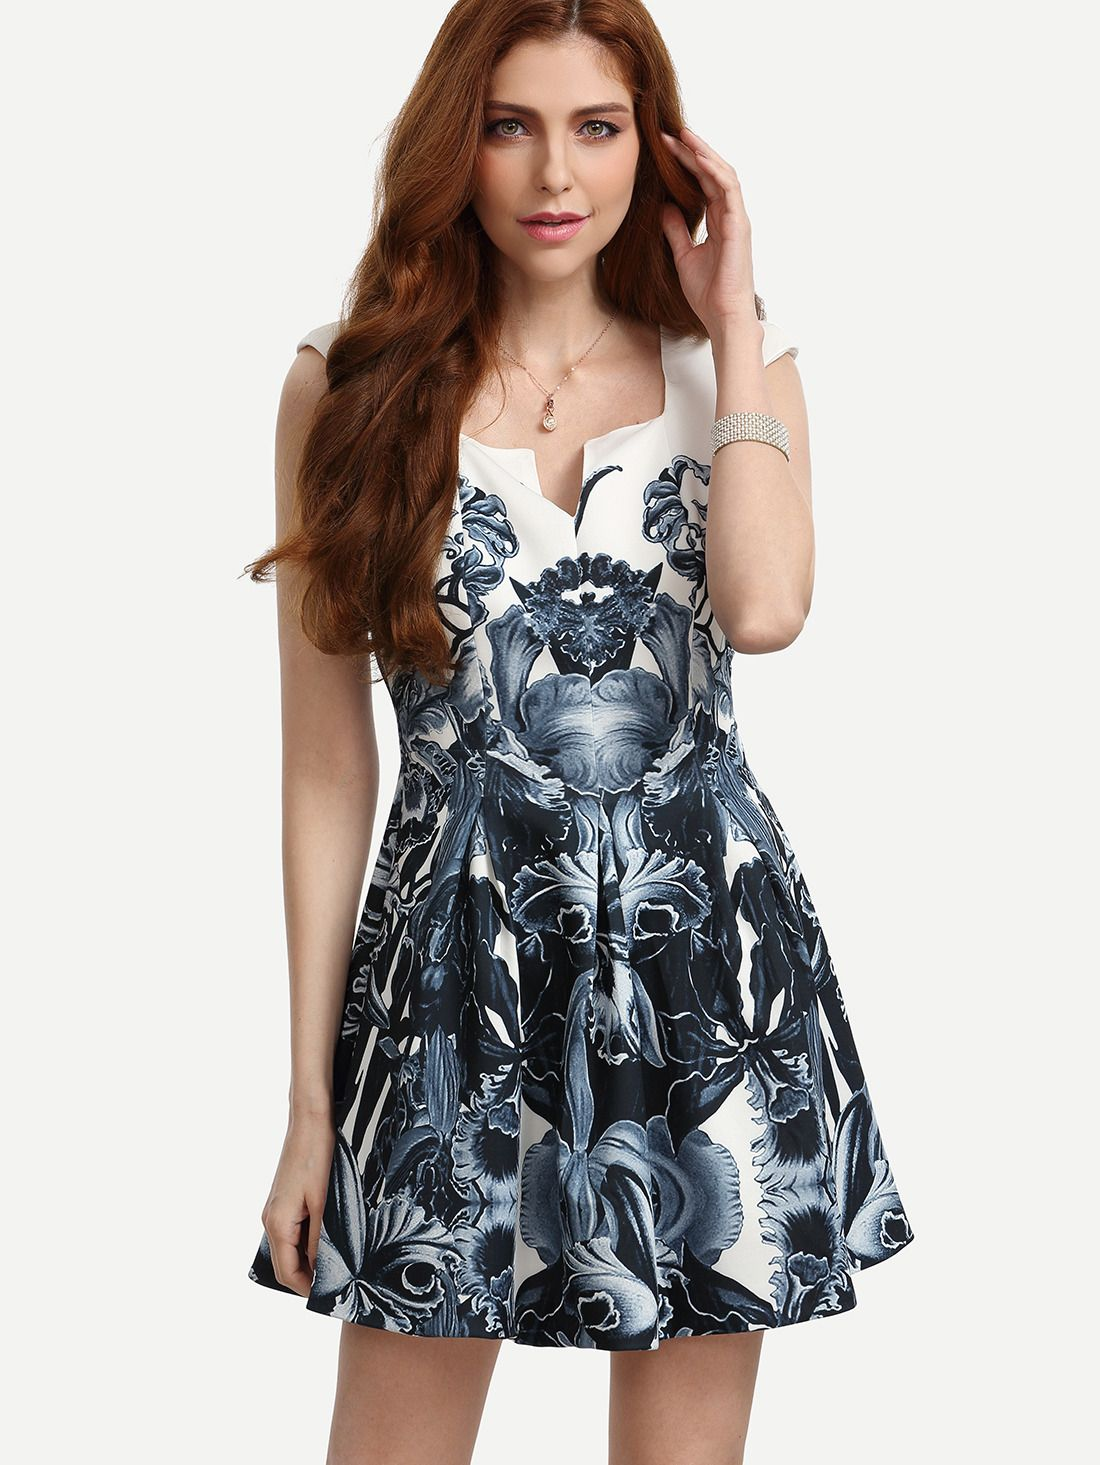 ¡Cómpralo ya!. Multicolor Print Shoulder Pad V Neck Dress. Blue Elegant Polyester V Neck Cap Sleeve A Line Short Floral Fabric has no stretch Summer Skater Dresses. , vestidoinformal, casual, informales, informal, day, kleidcasual, vestidoinformal, robeinformelle, vestitoinformale, día. Vestido informal  de mujer   de SheIn.